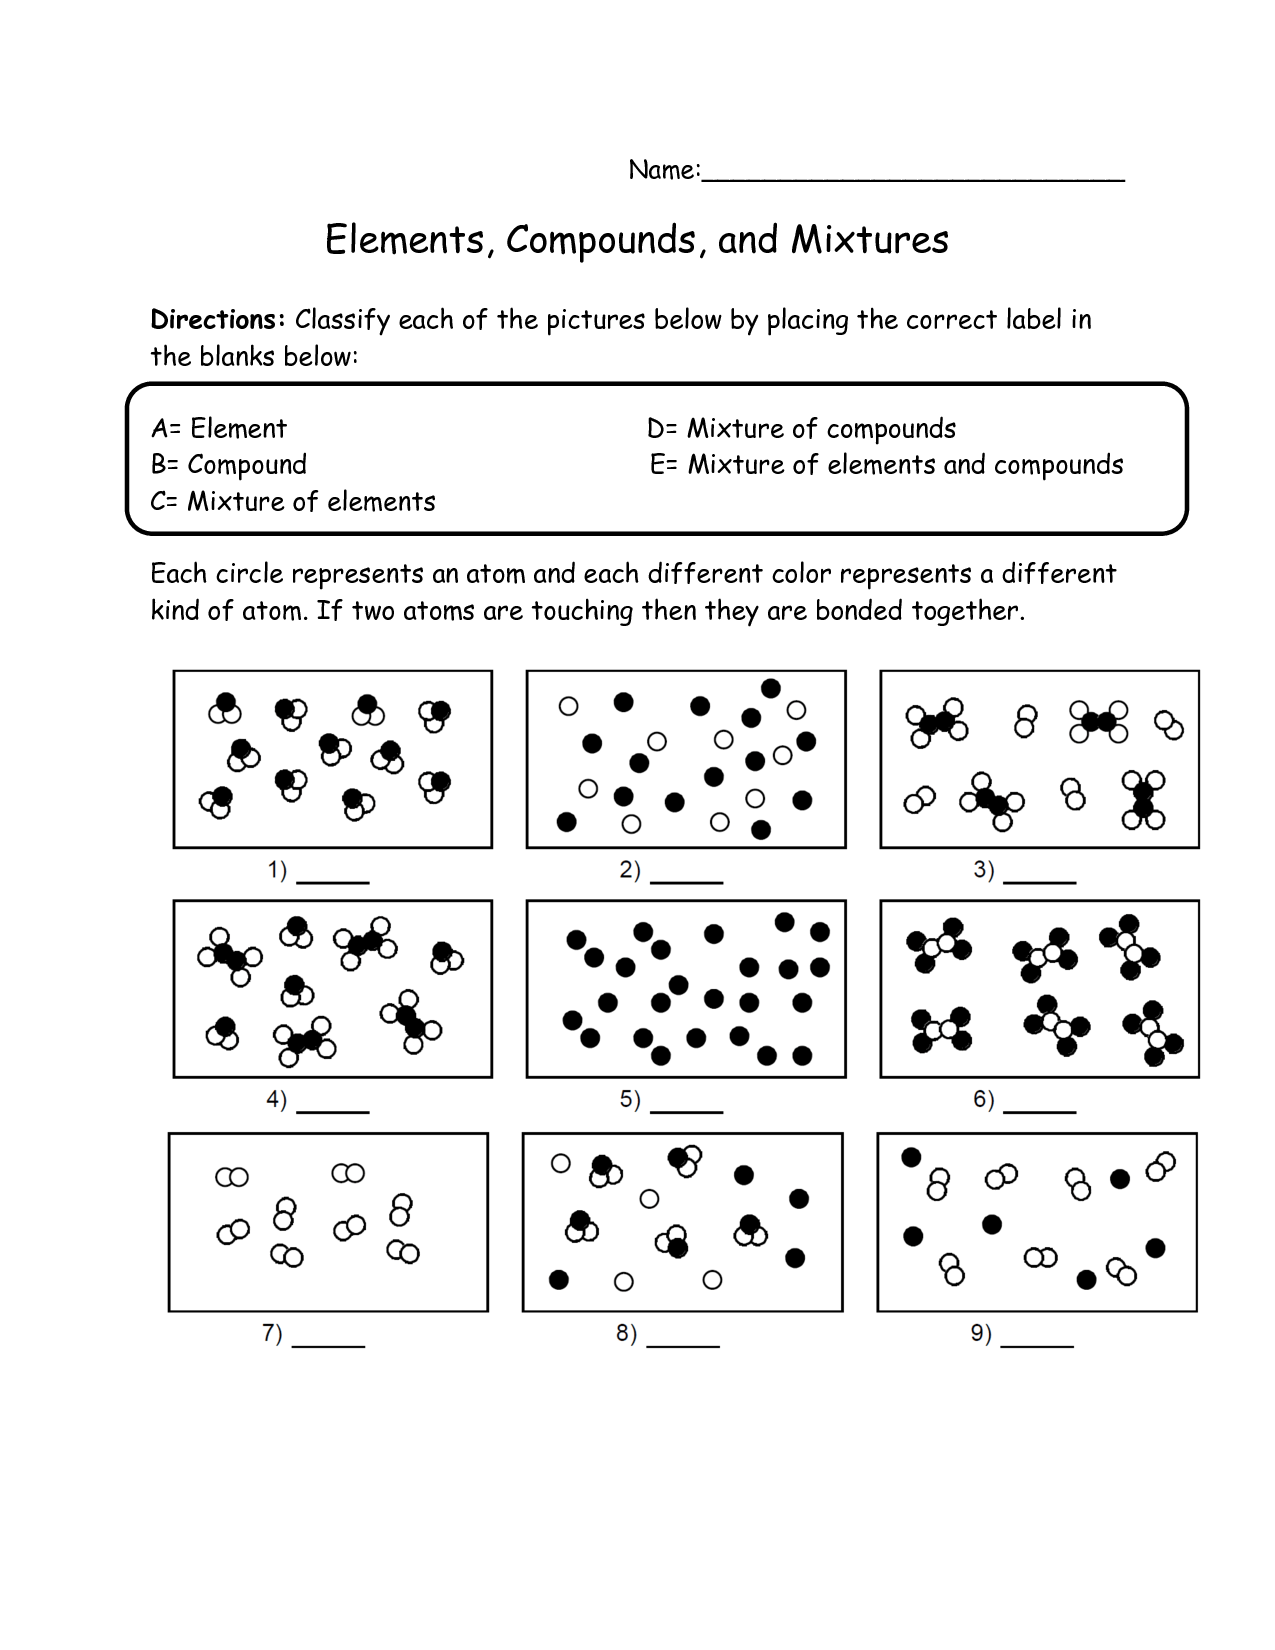 17 Best Images Of Elements Compounds And Mixtures Worksheet Answer Key